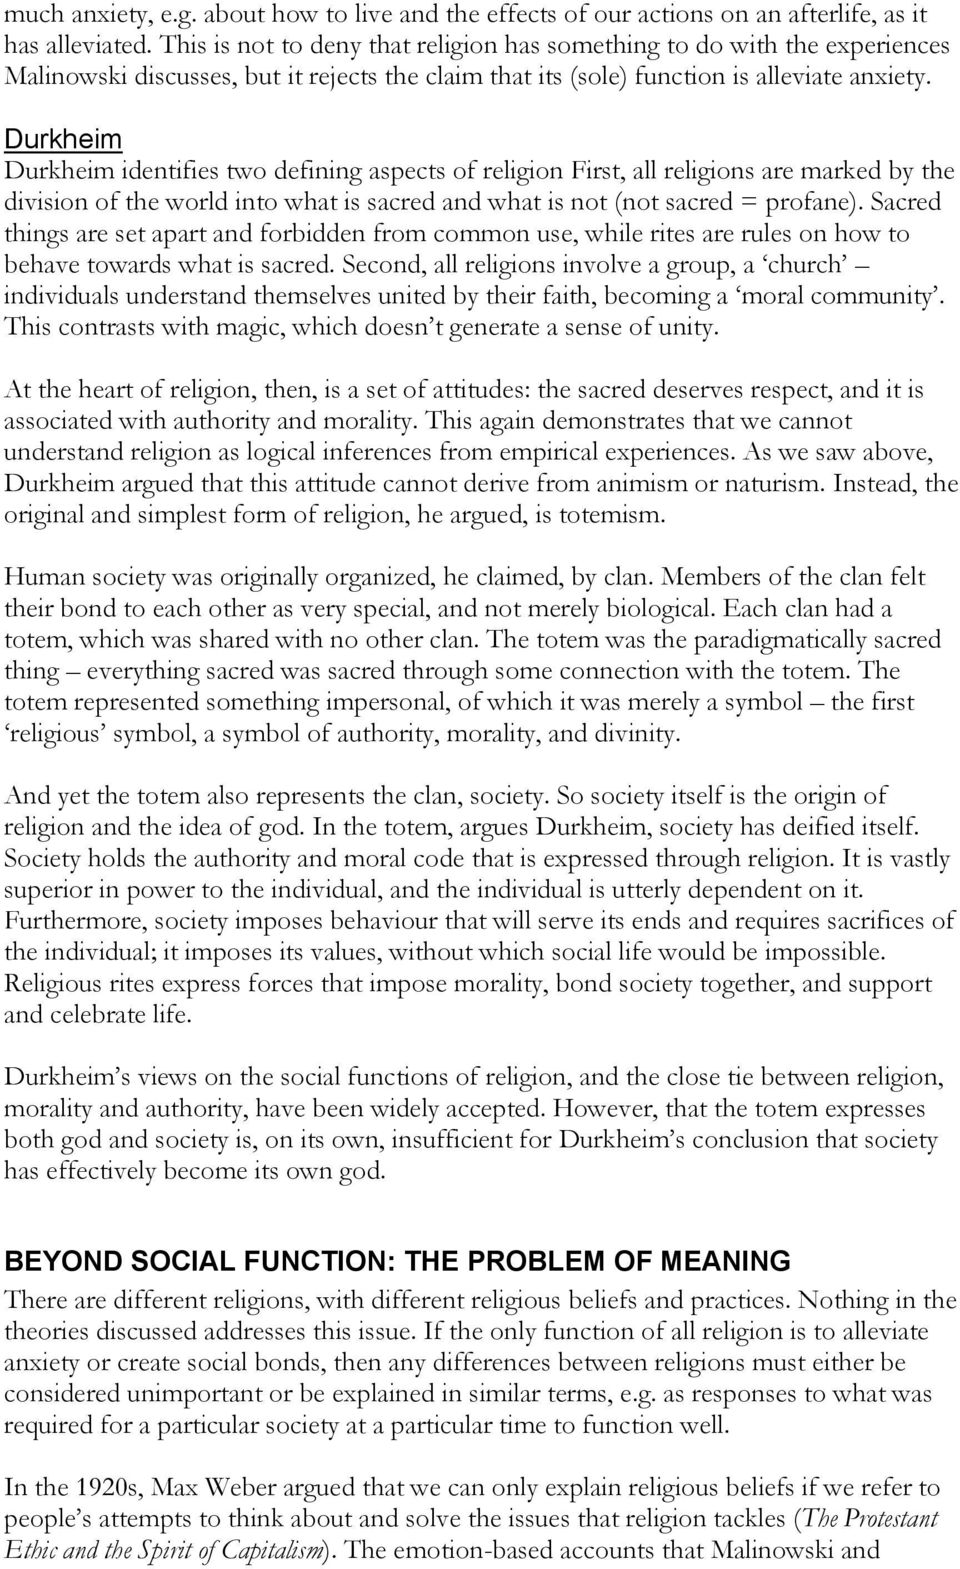 Durkheim Durkheim identifies two defining aspects of religion First, all religions are marked by the division of the world into what is sacred and what is not (not sacred = profane).